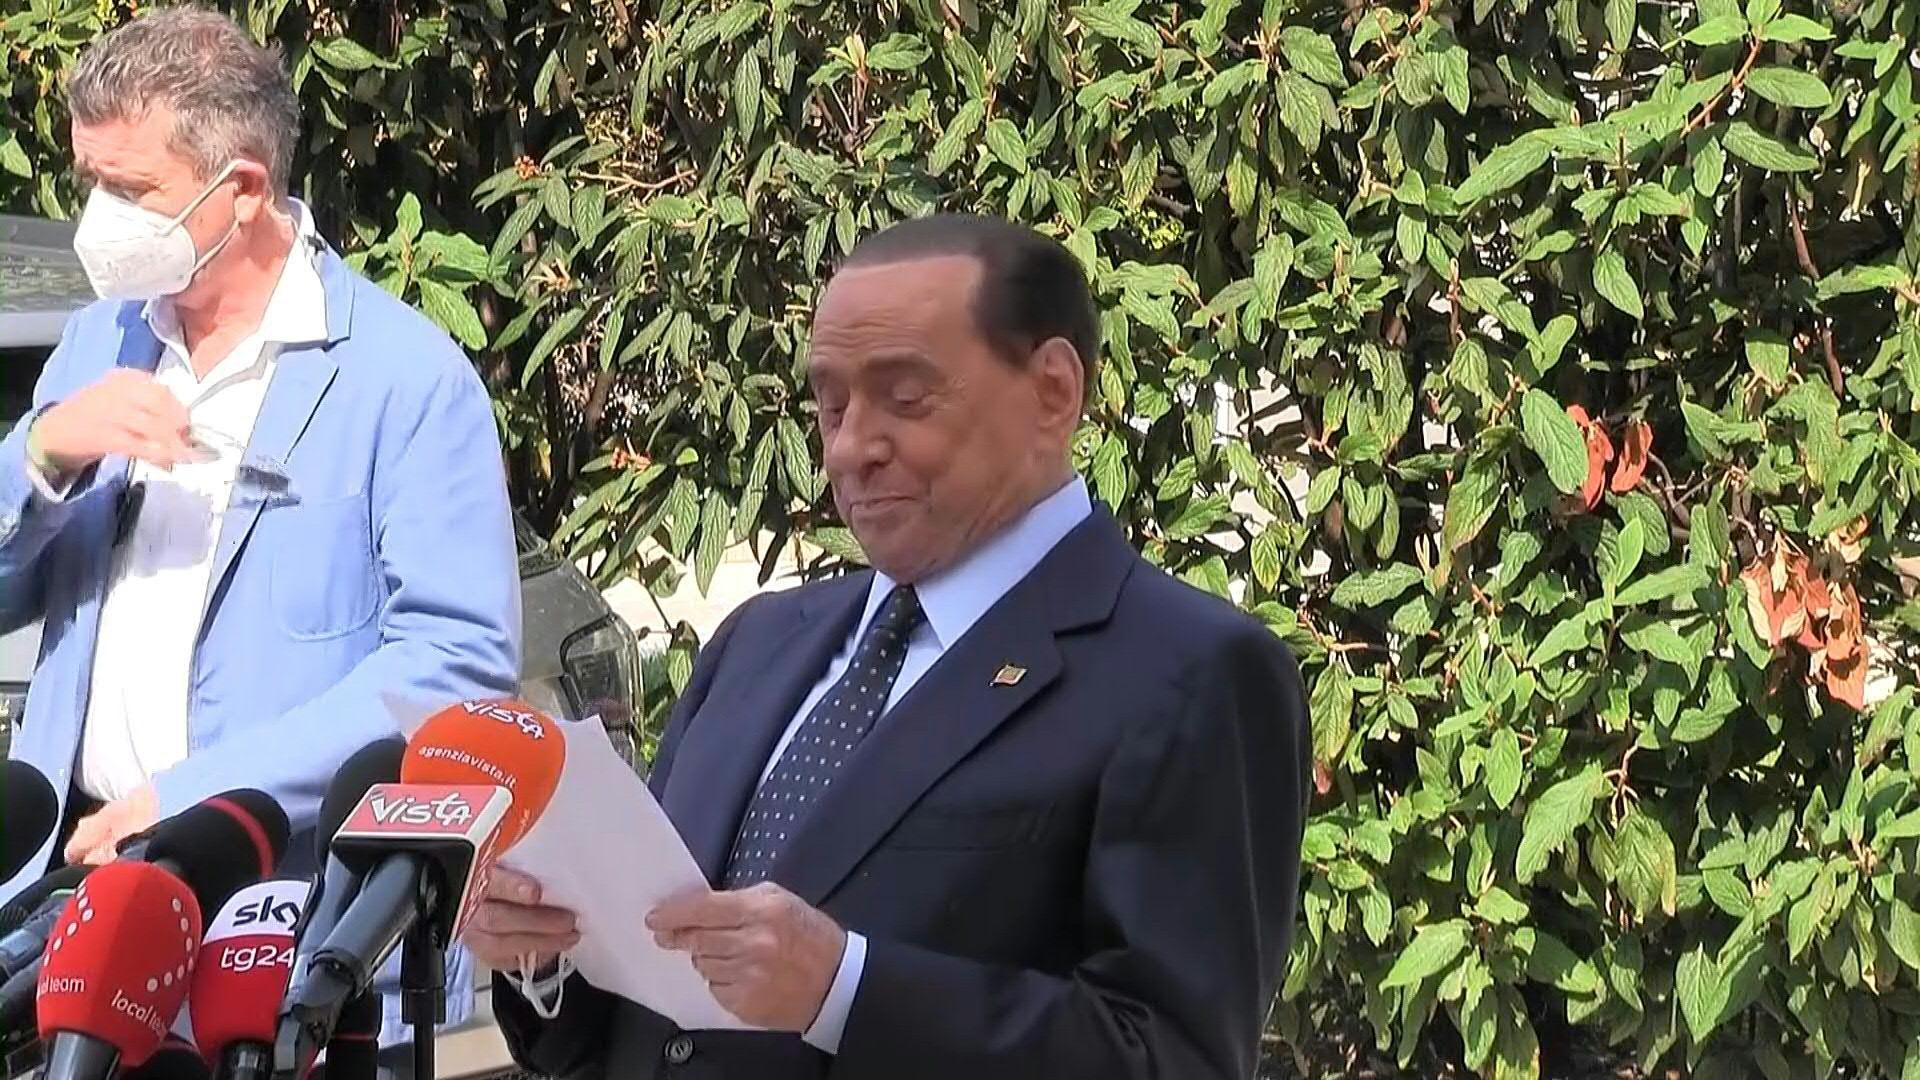 Italy's Silvio Berlusconi leaves hospital after virus scare [Video]